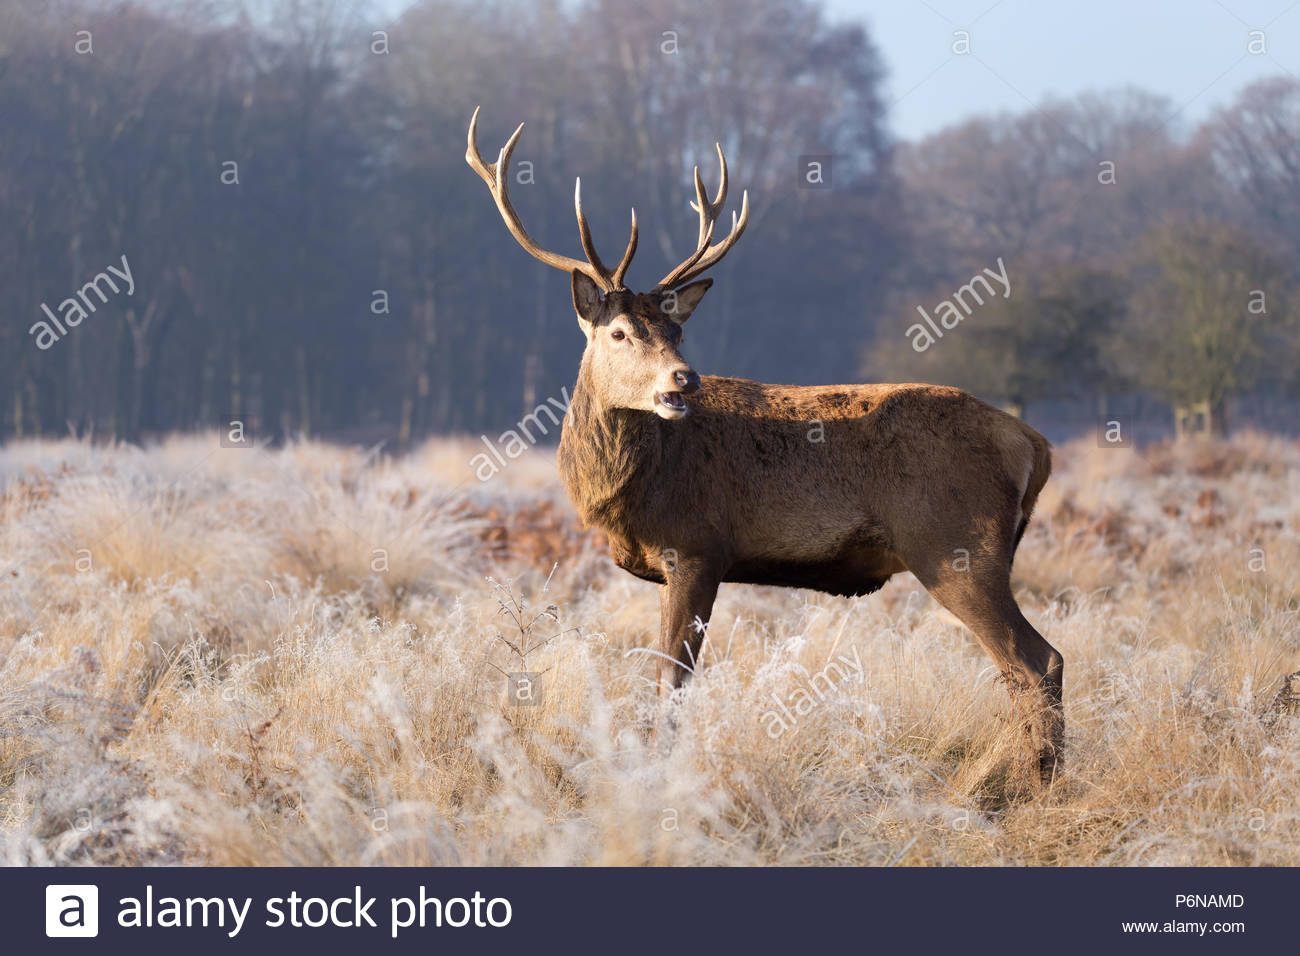 A magnificent Red Deer stag with impressive antlers begins to bellow early in the morning in a frost covered meadow in England, UK. Stock Photo